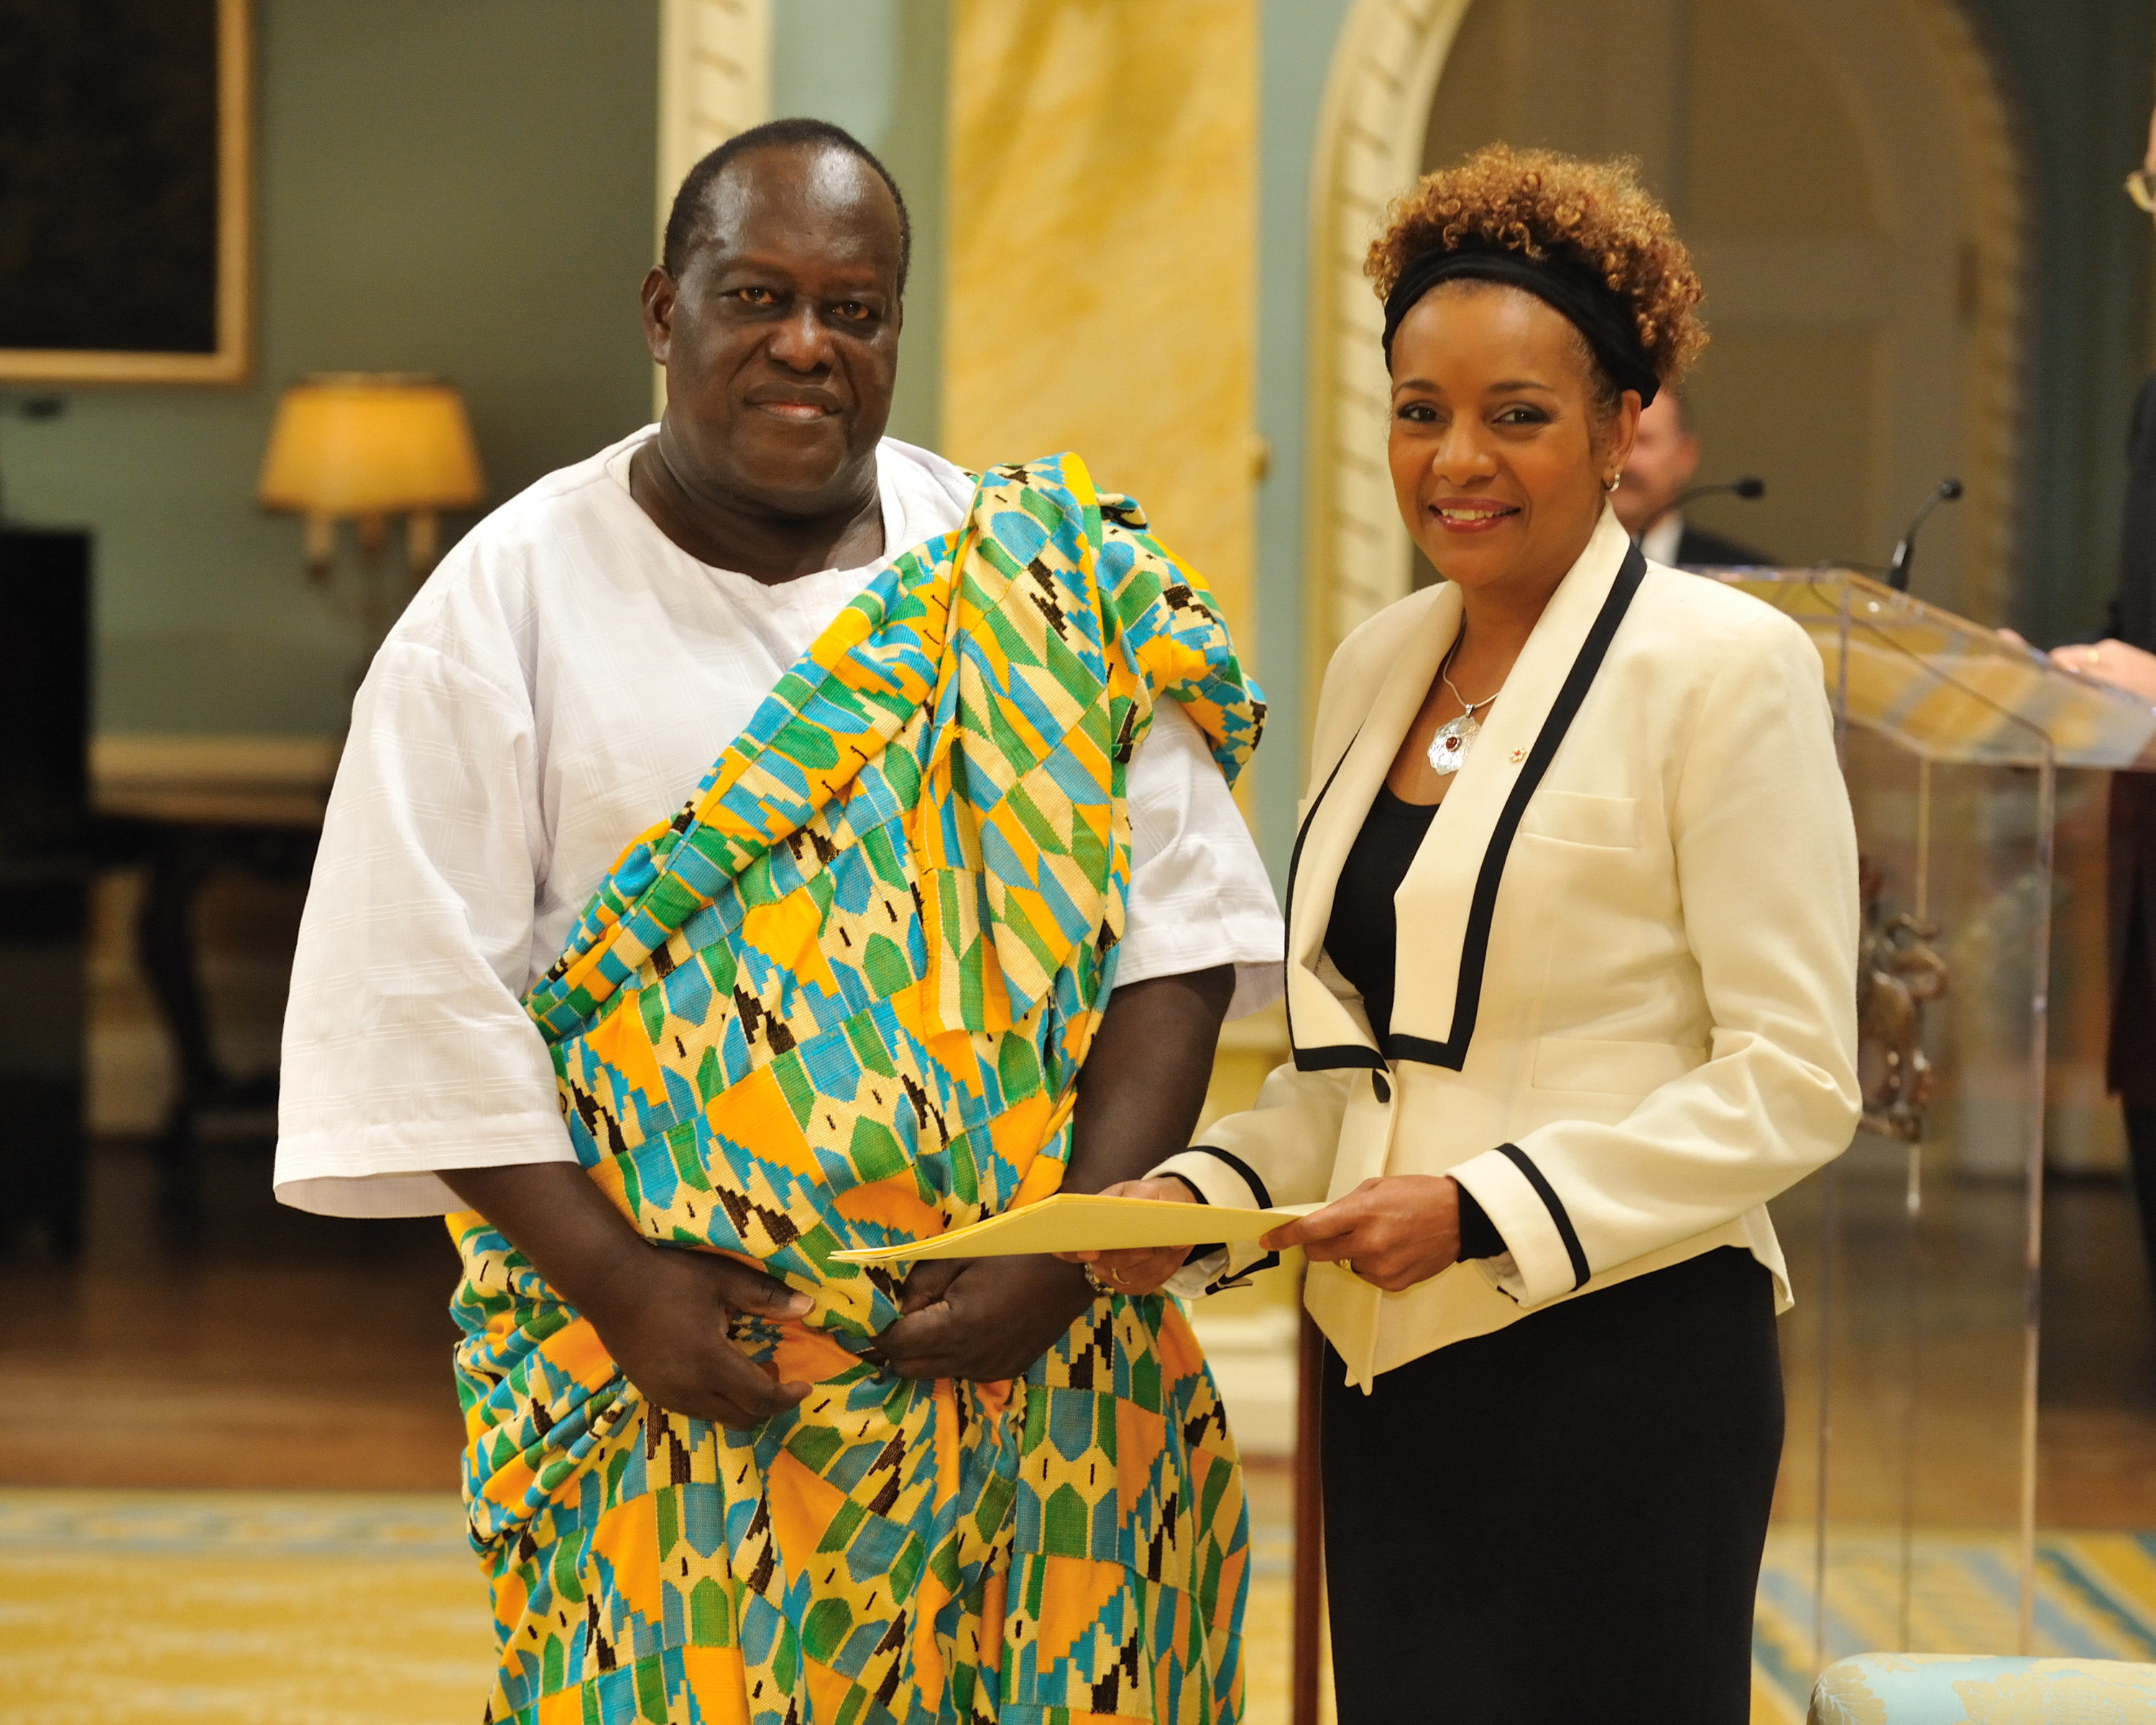 The Governor General received the credentials of His Excellency Richard Benjamin Turkson, High Commissioner of the Republic of Ghana.